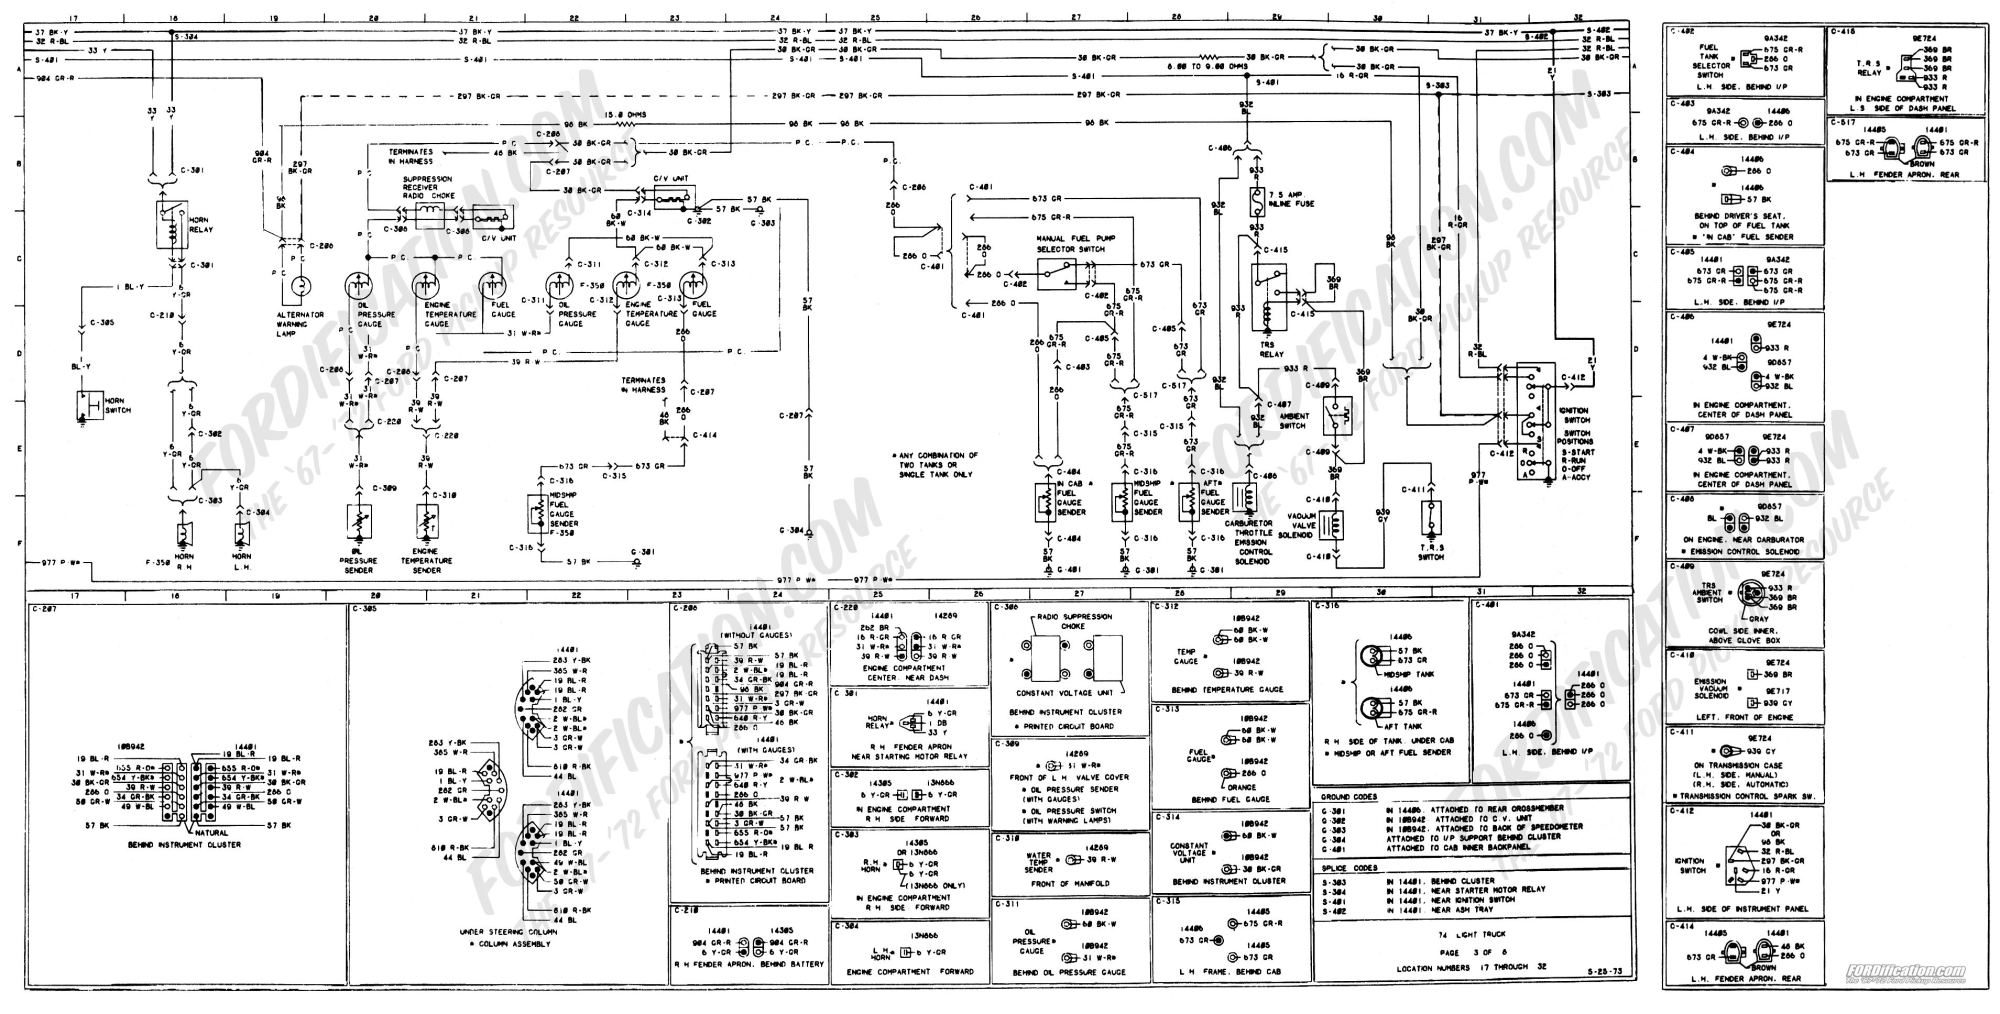 hight resolution of 1983 ford motorhome econoline fuel wiring diagram wiring library 1983 ford econoline rv remodeled 1983 ford motorhome econoline fuel wiring diagram